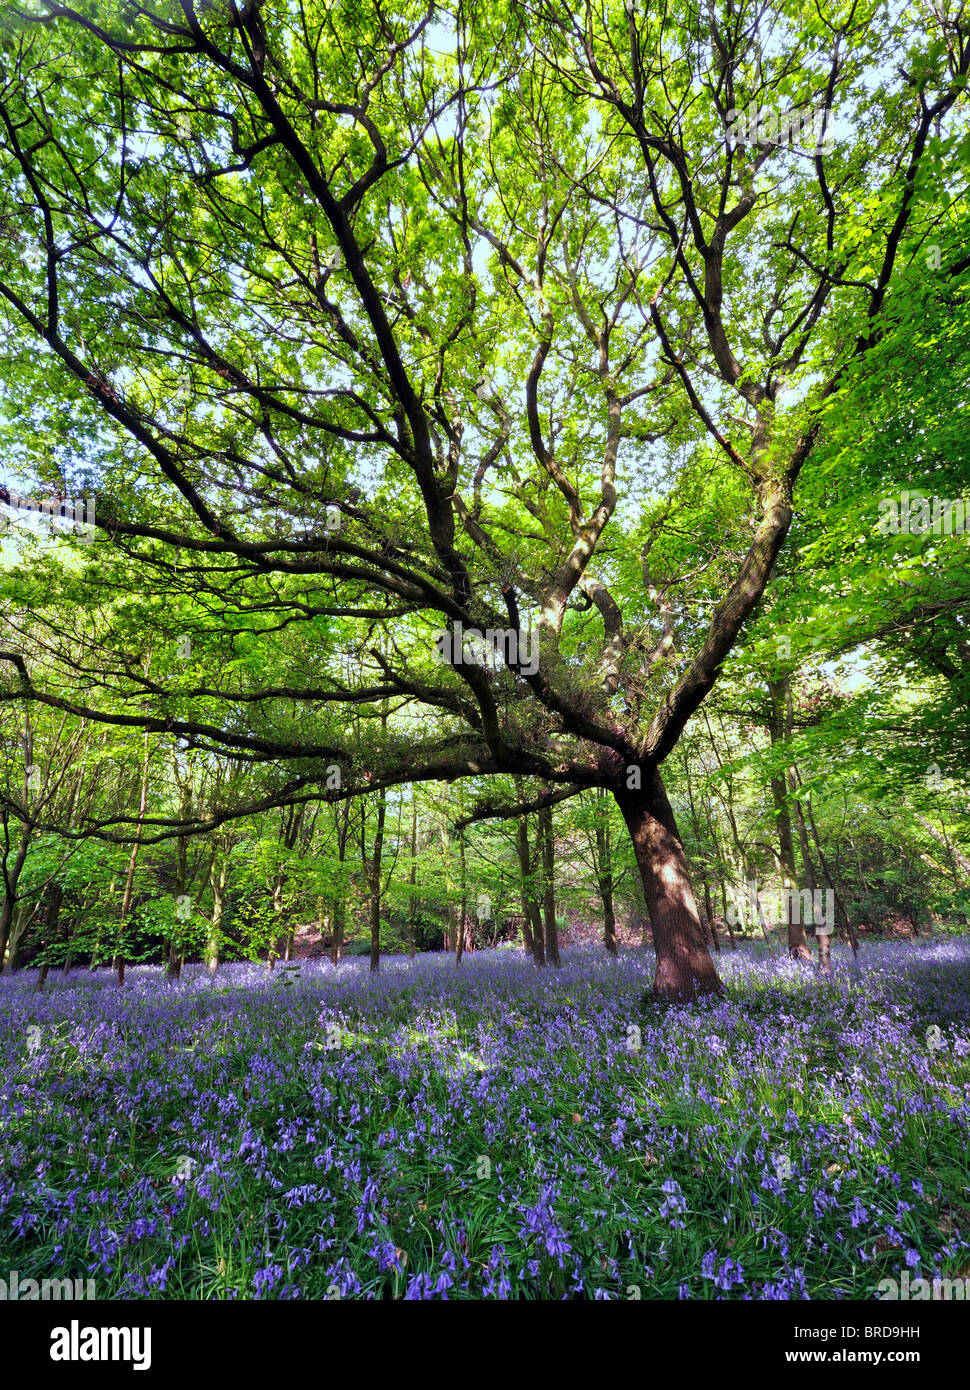 large singled out tree central in a wood carpeted with bluebell flowers - Stock Image